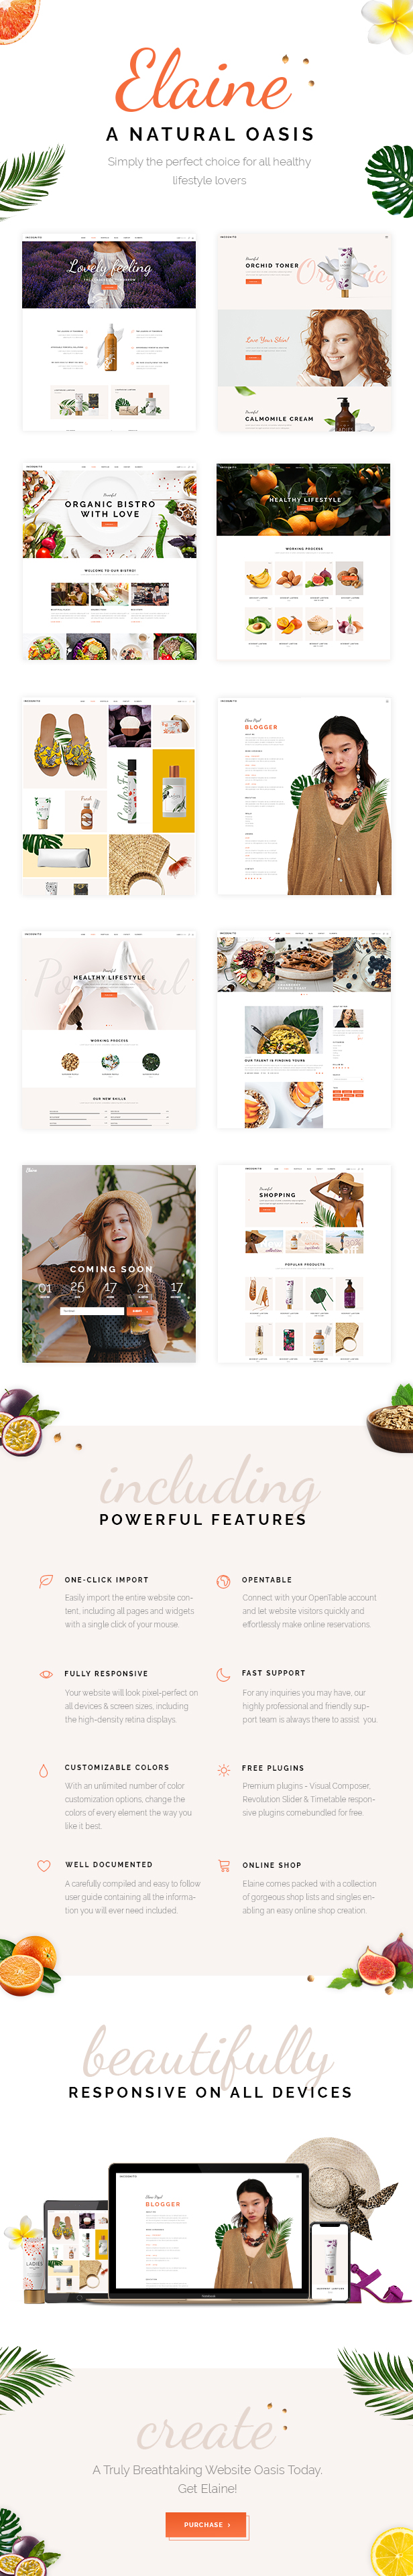 Elaine - Modern Beauty and Healthy Lifestyle Theme - 1